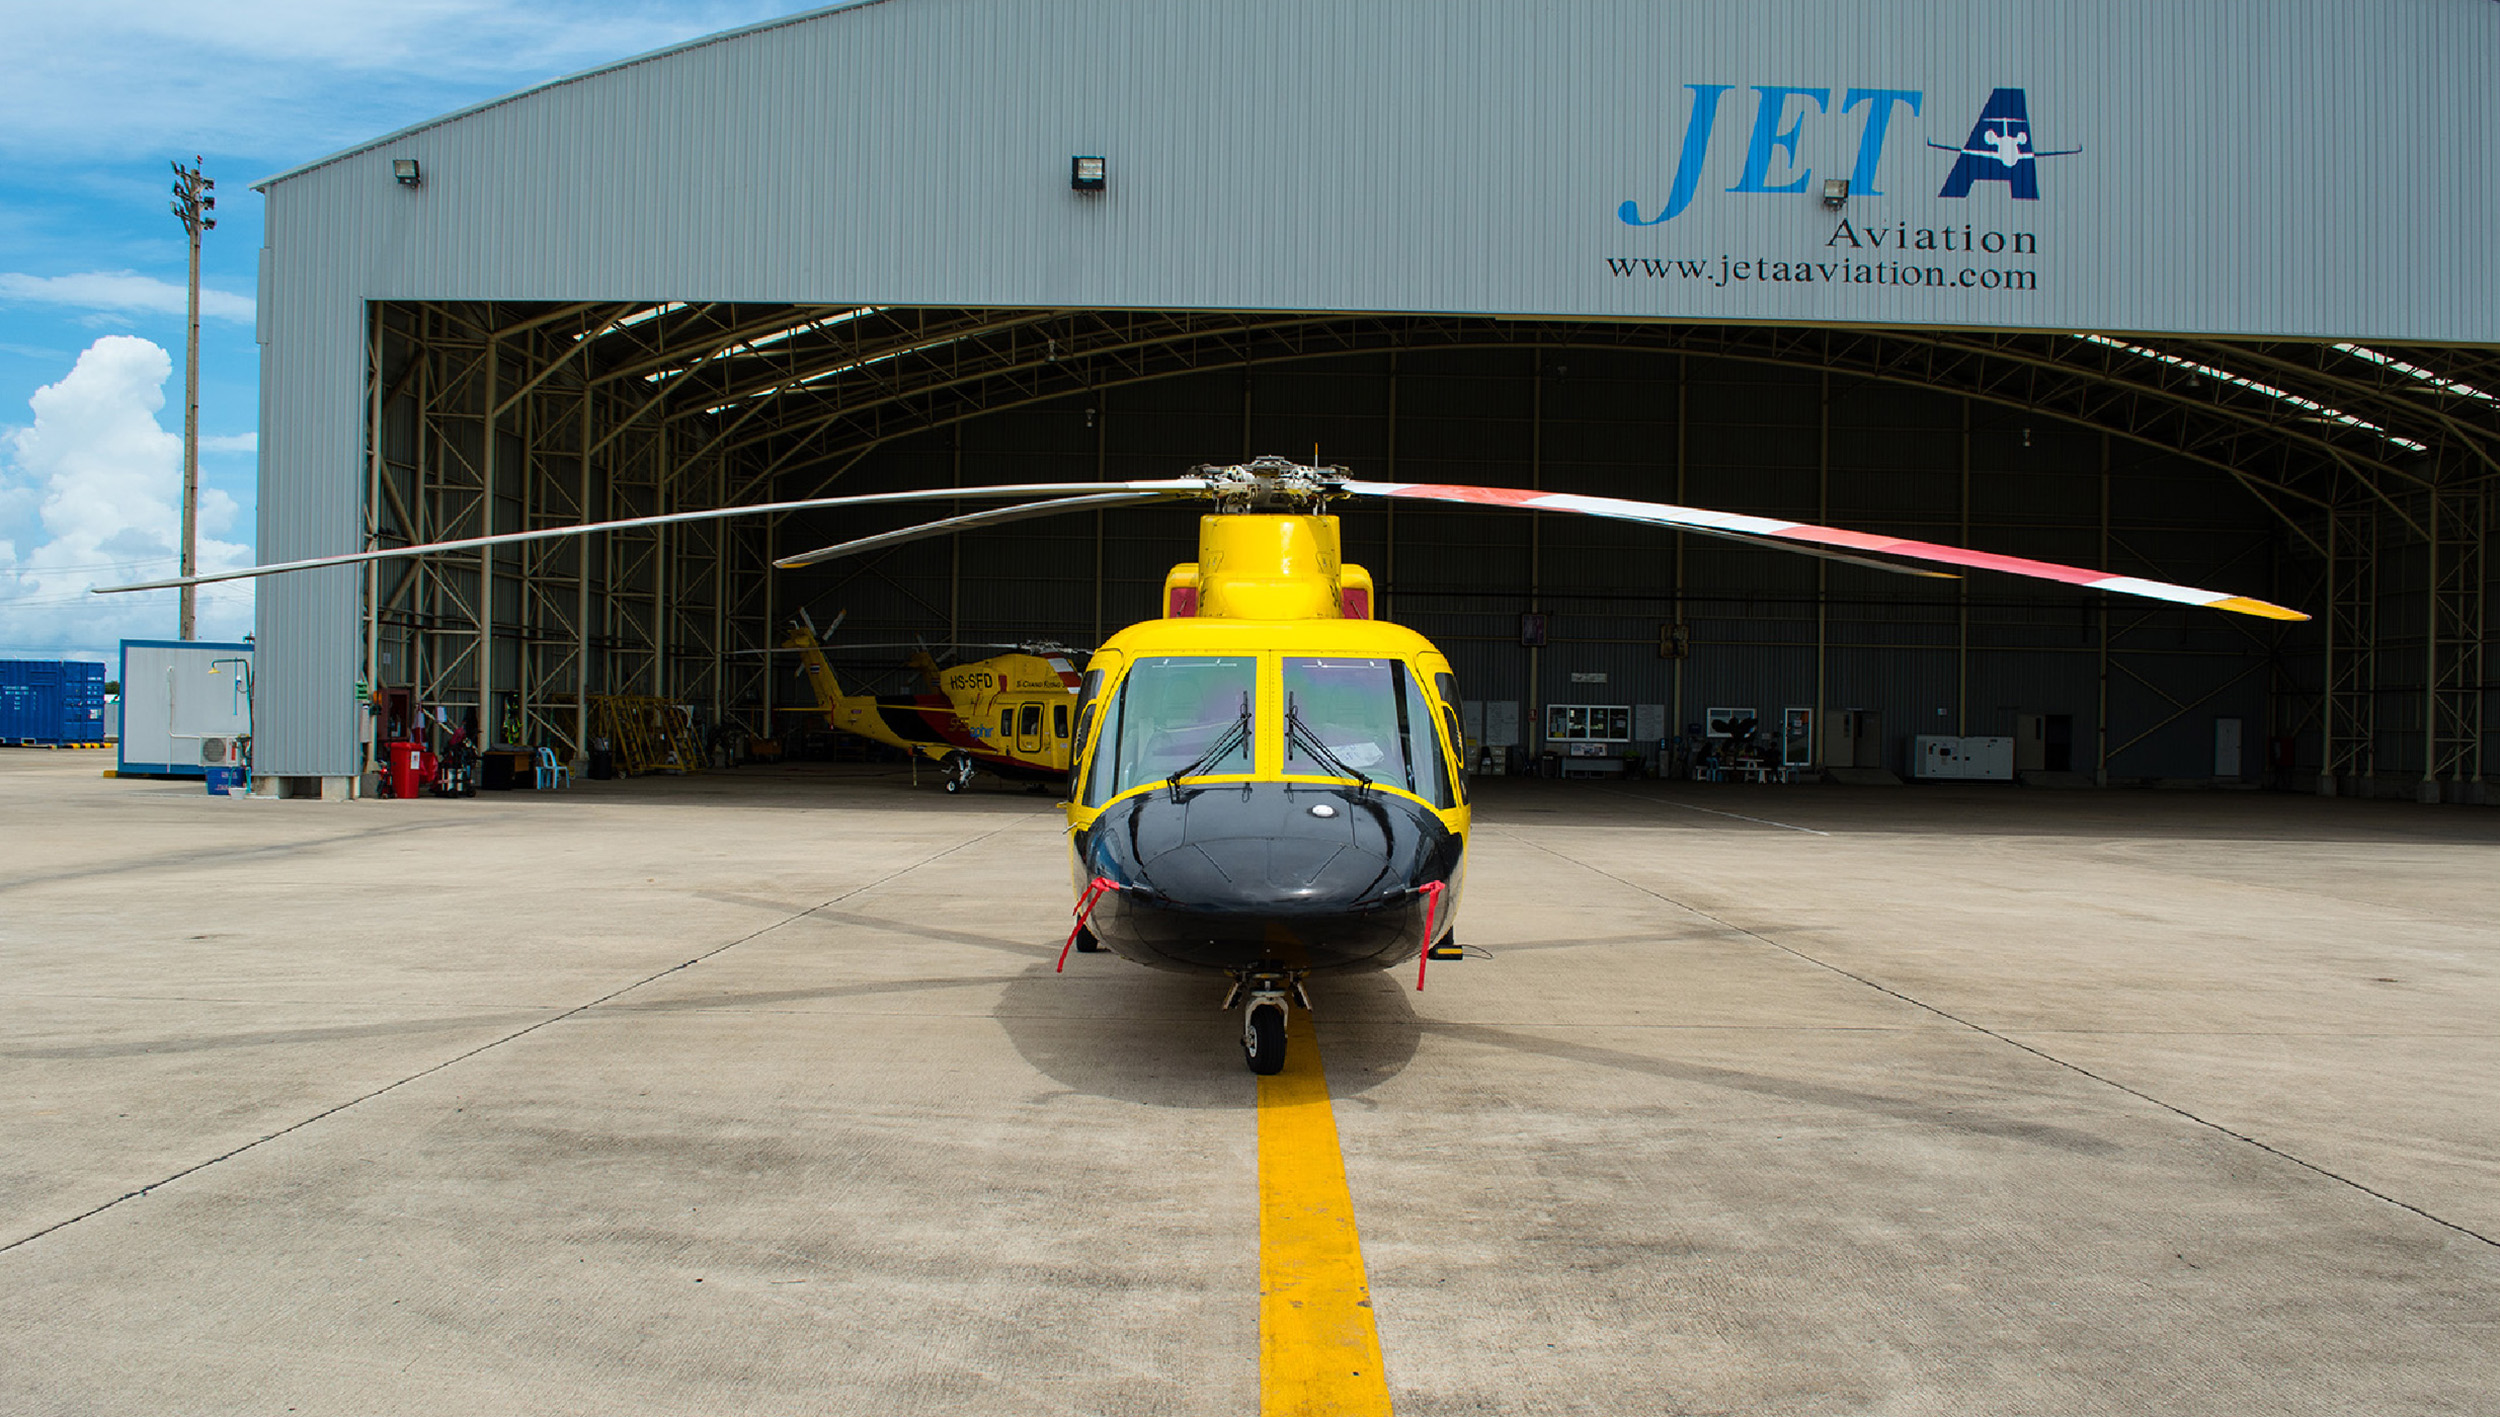 Sfs Aviation Co Ltd Aircraft Charter Services Management Helicopters Audit Approvals